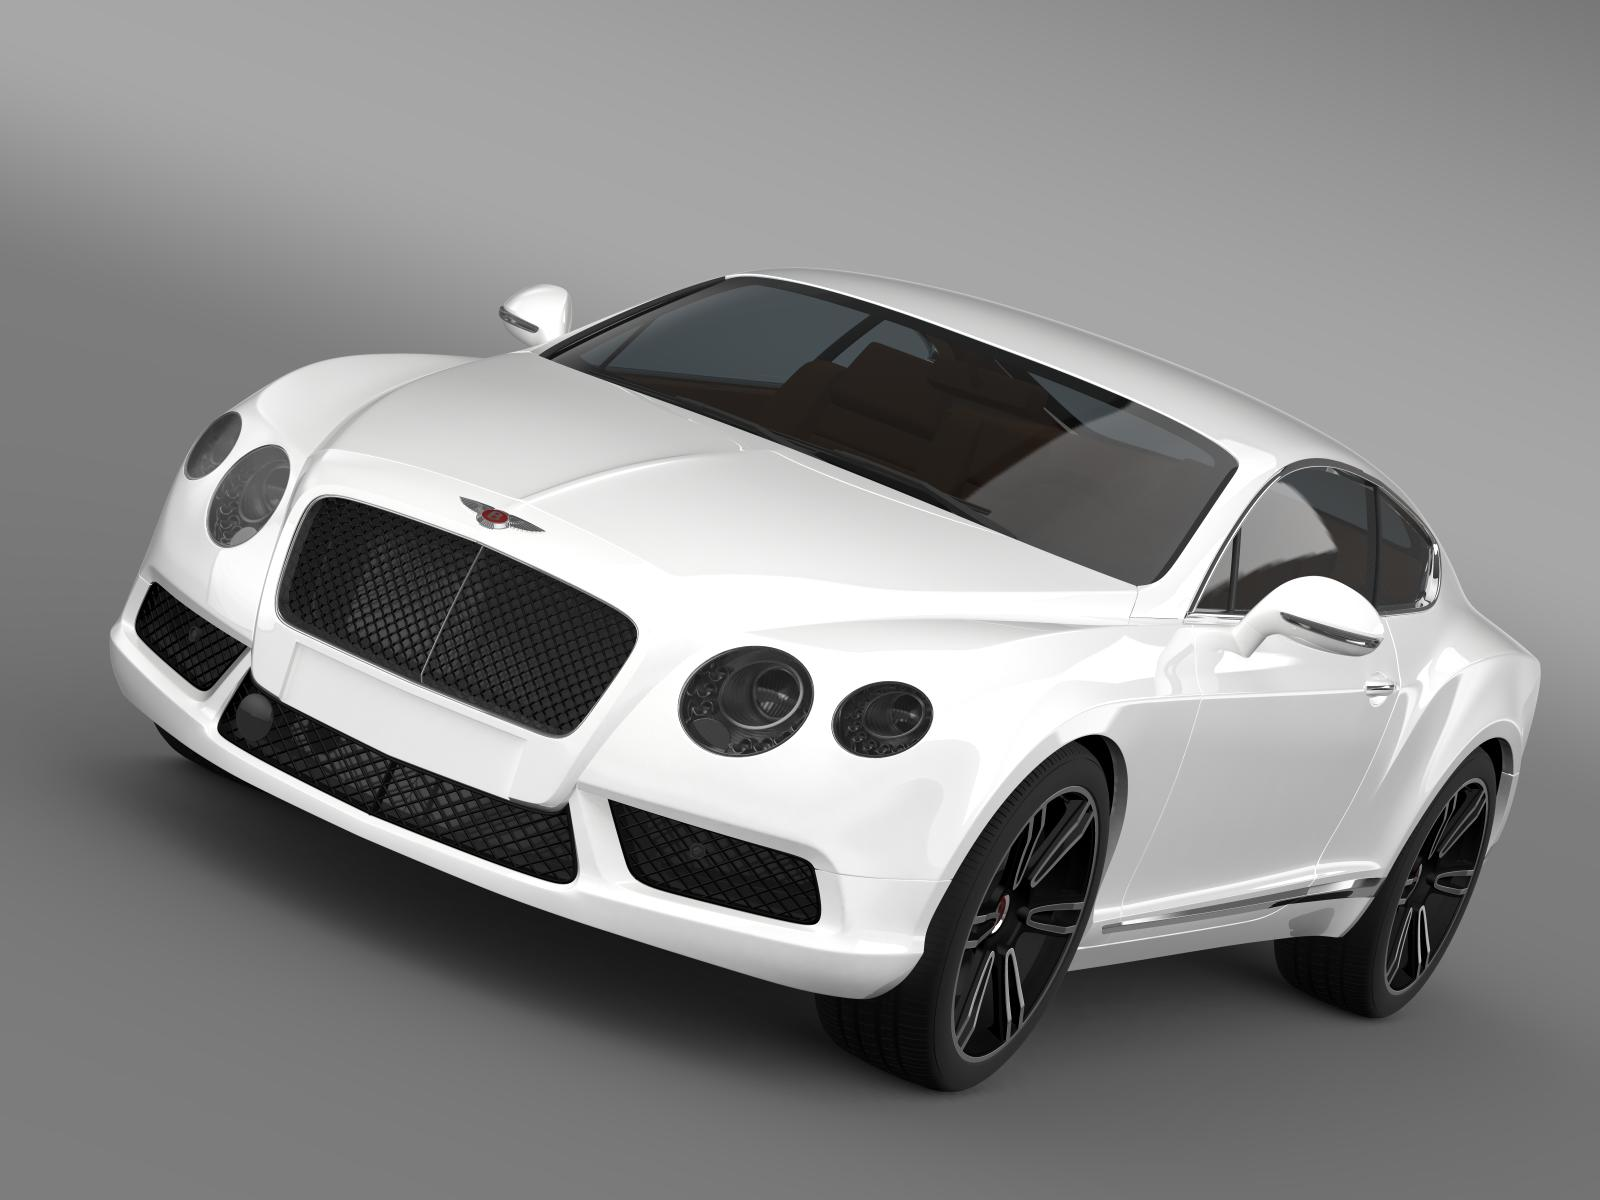 bentley continental gt v8 2013 3d model 3ds max fbx c4d lwo ma mb hrc xsi obj 164015